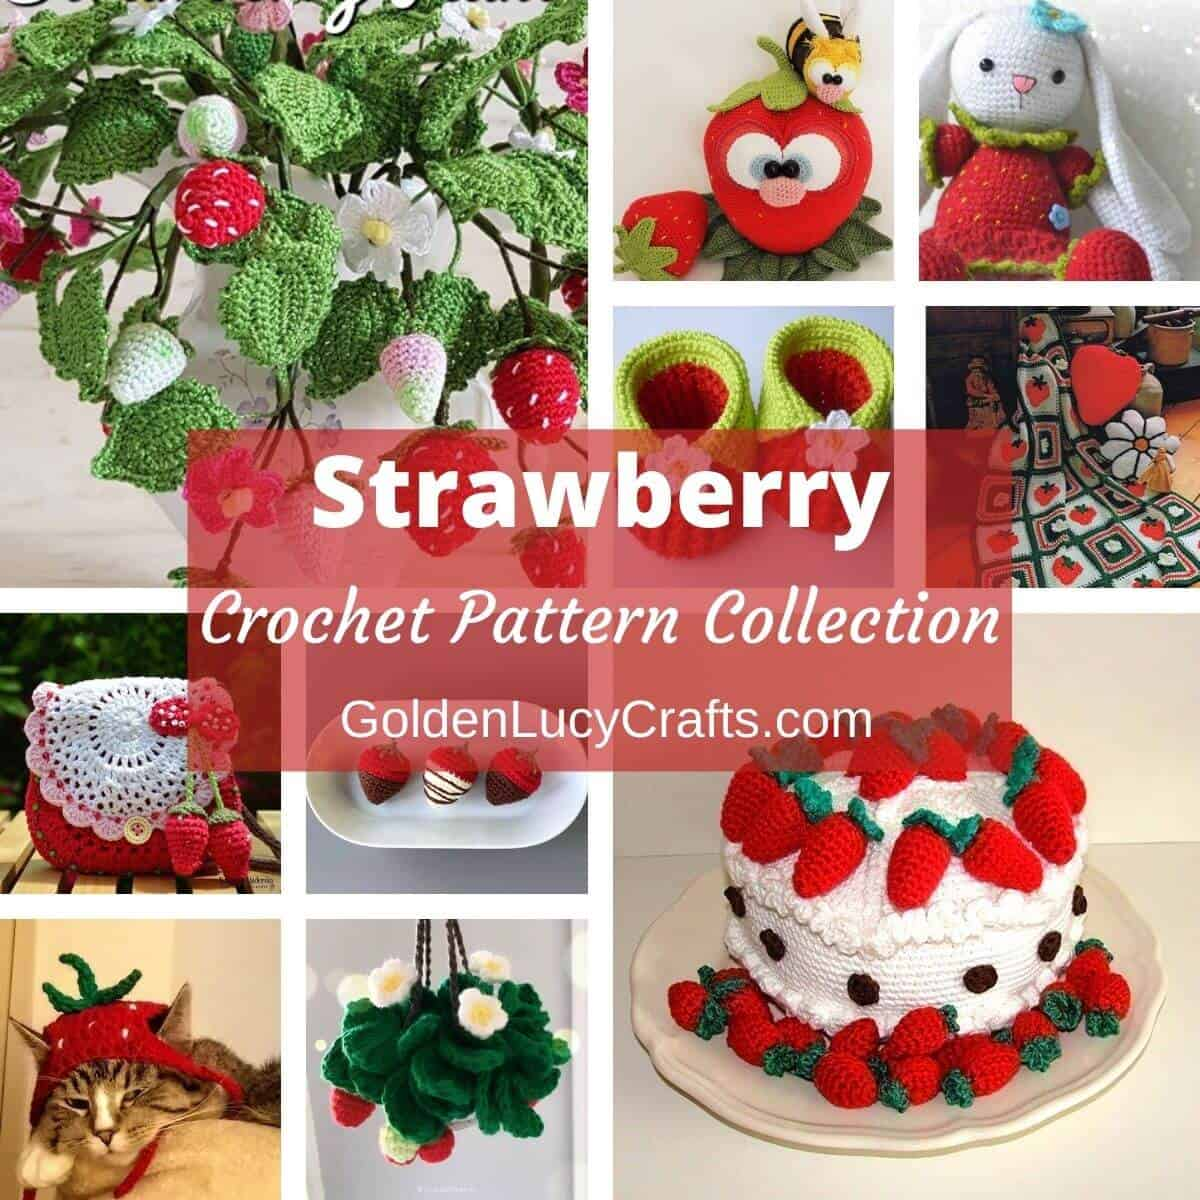 Photo collage of strawberry-themed crocheted items.